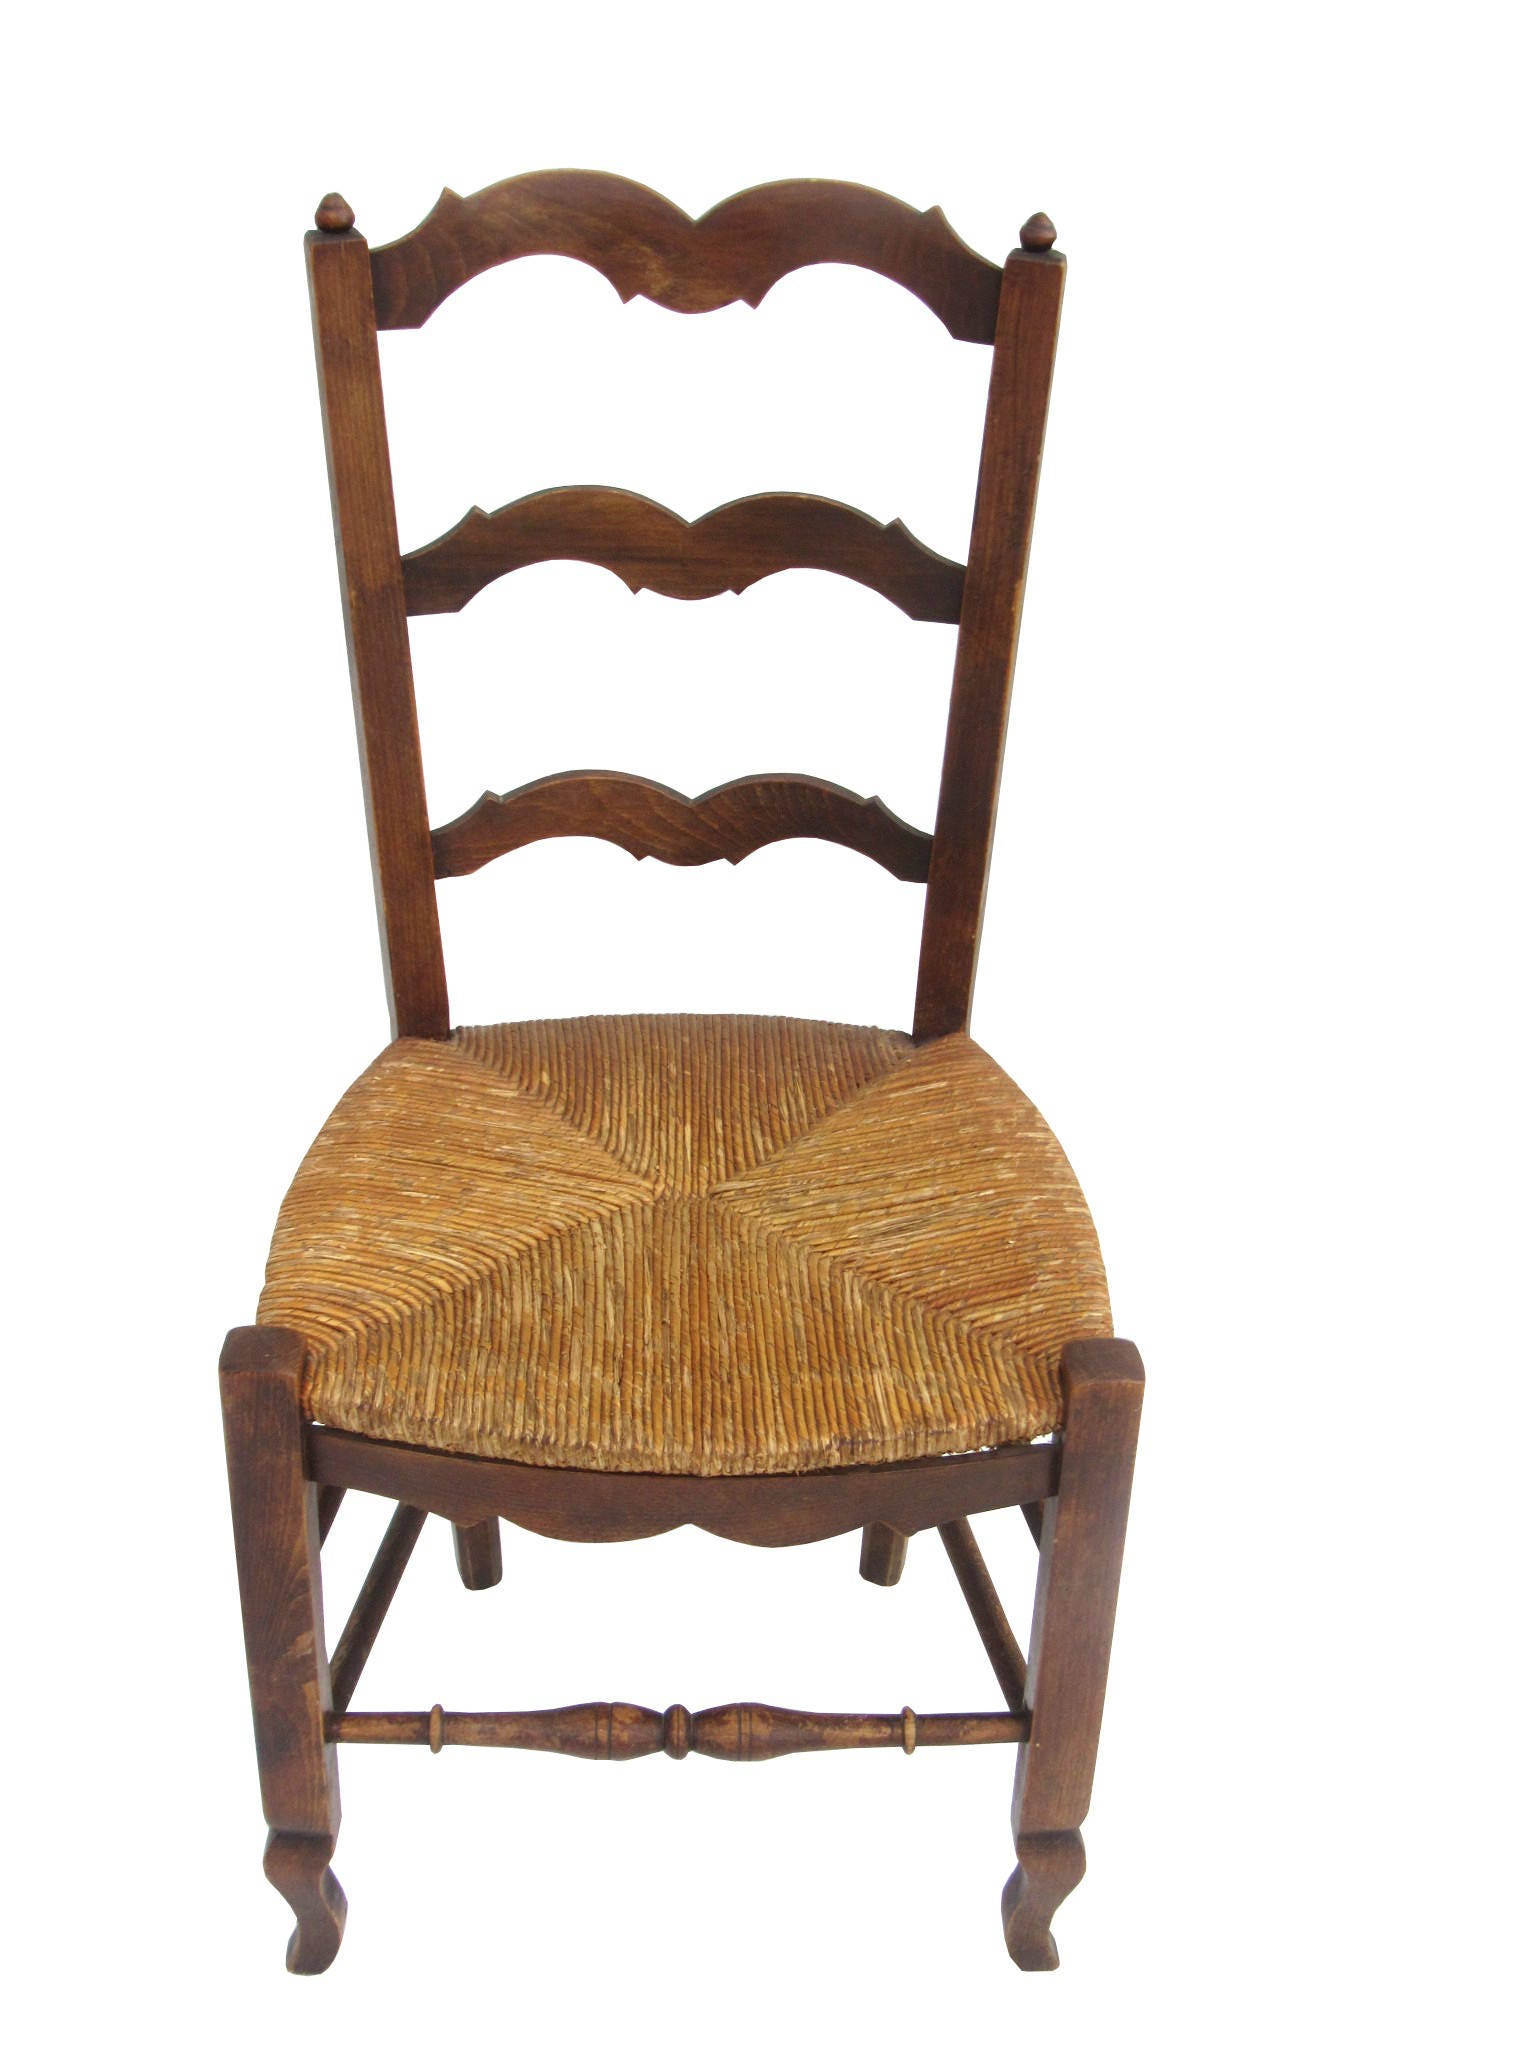 pair of antique french country rush seat chairs french provincial